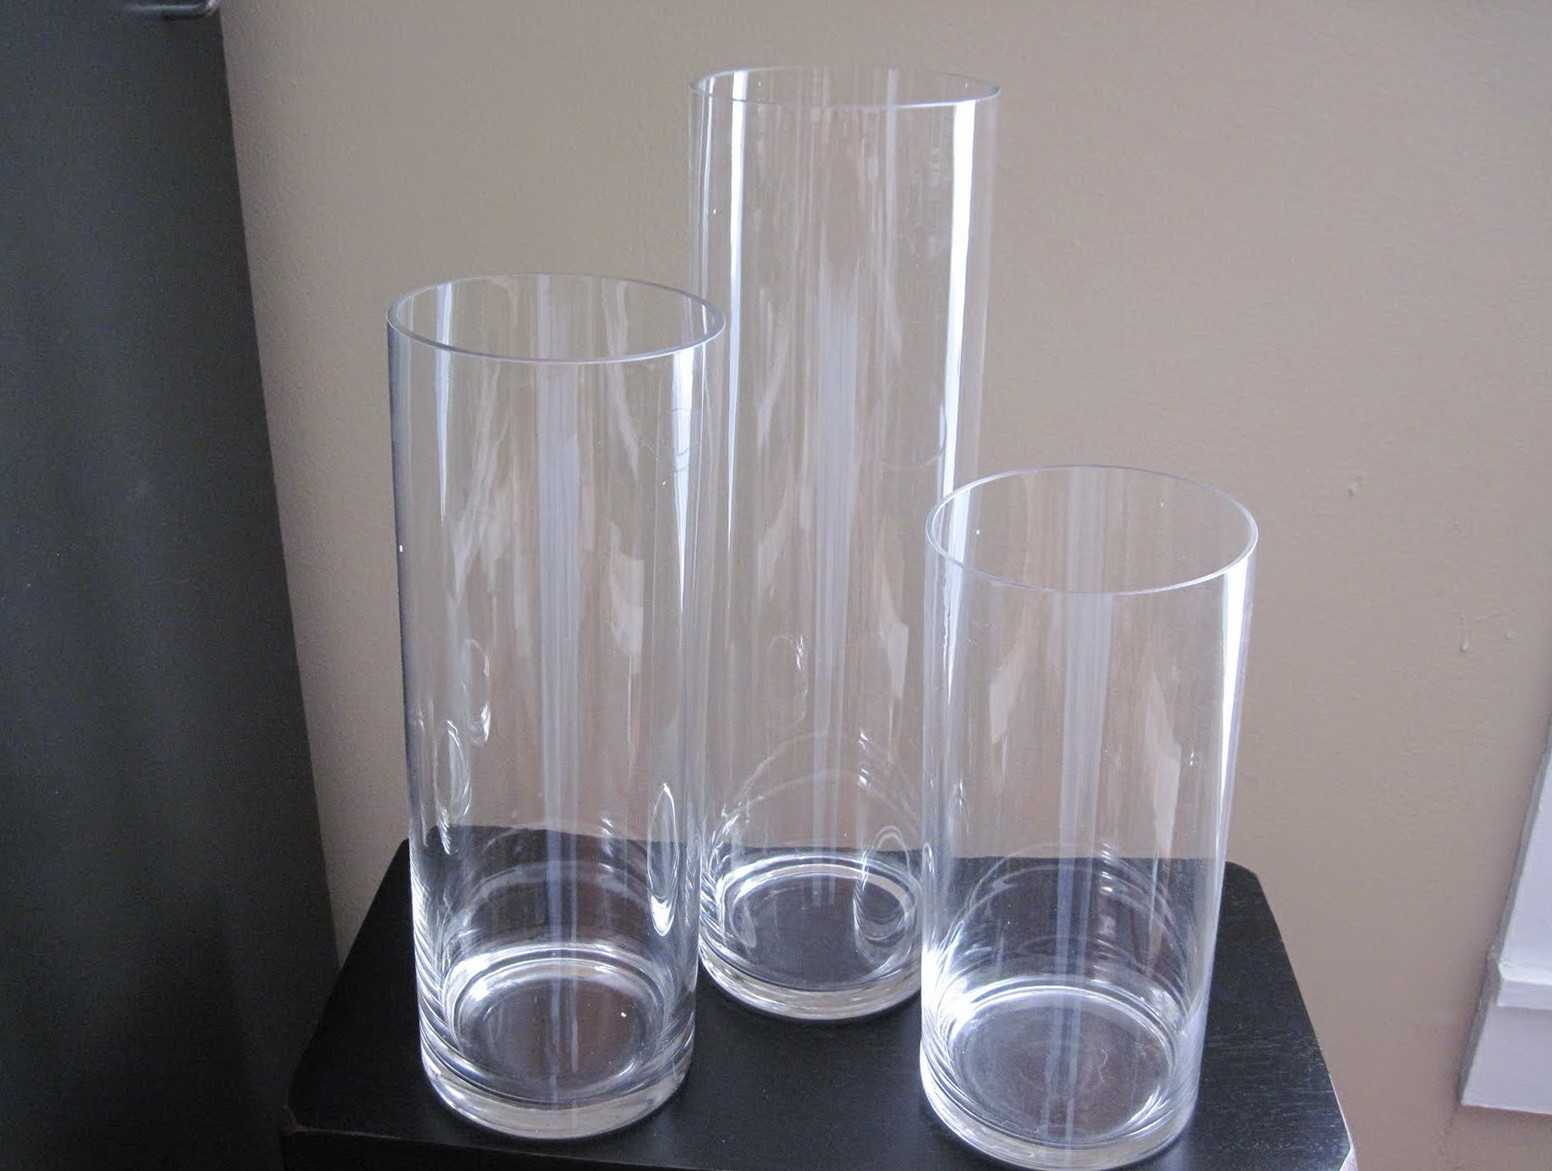 cheap glass vases for wedding of vases design ideas assorted everyday vases wholesale flowers and throughout wholesale flower cheap in there are three tall glass vases bulk cylinder twenty four home design ideas simple classic transparent